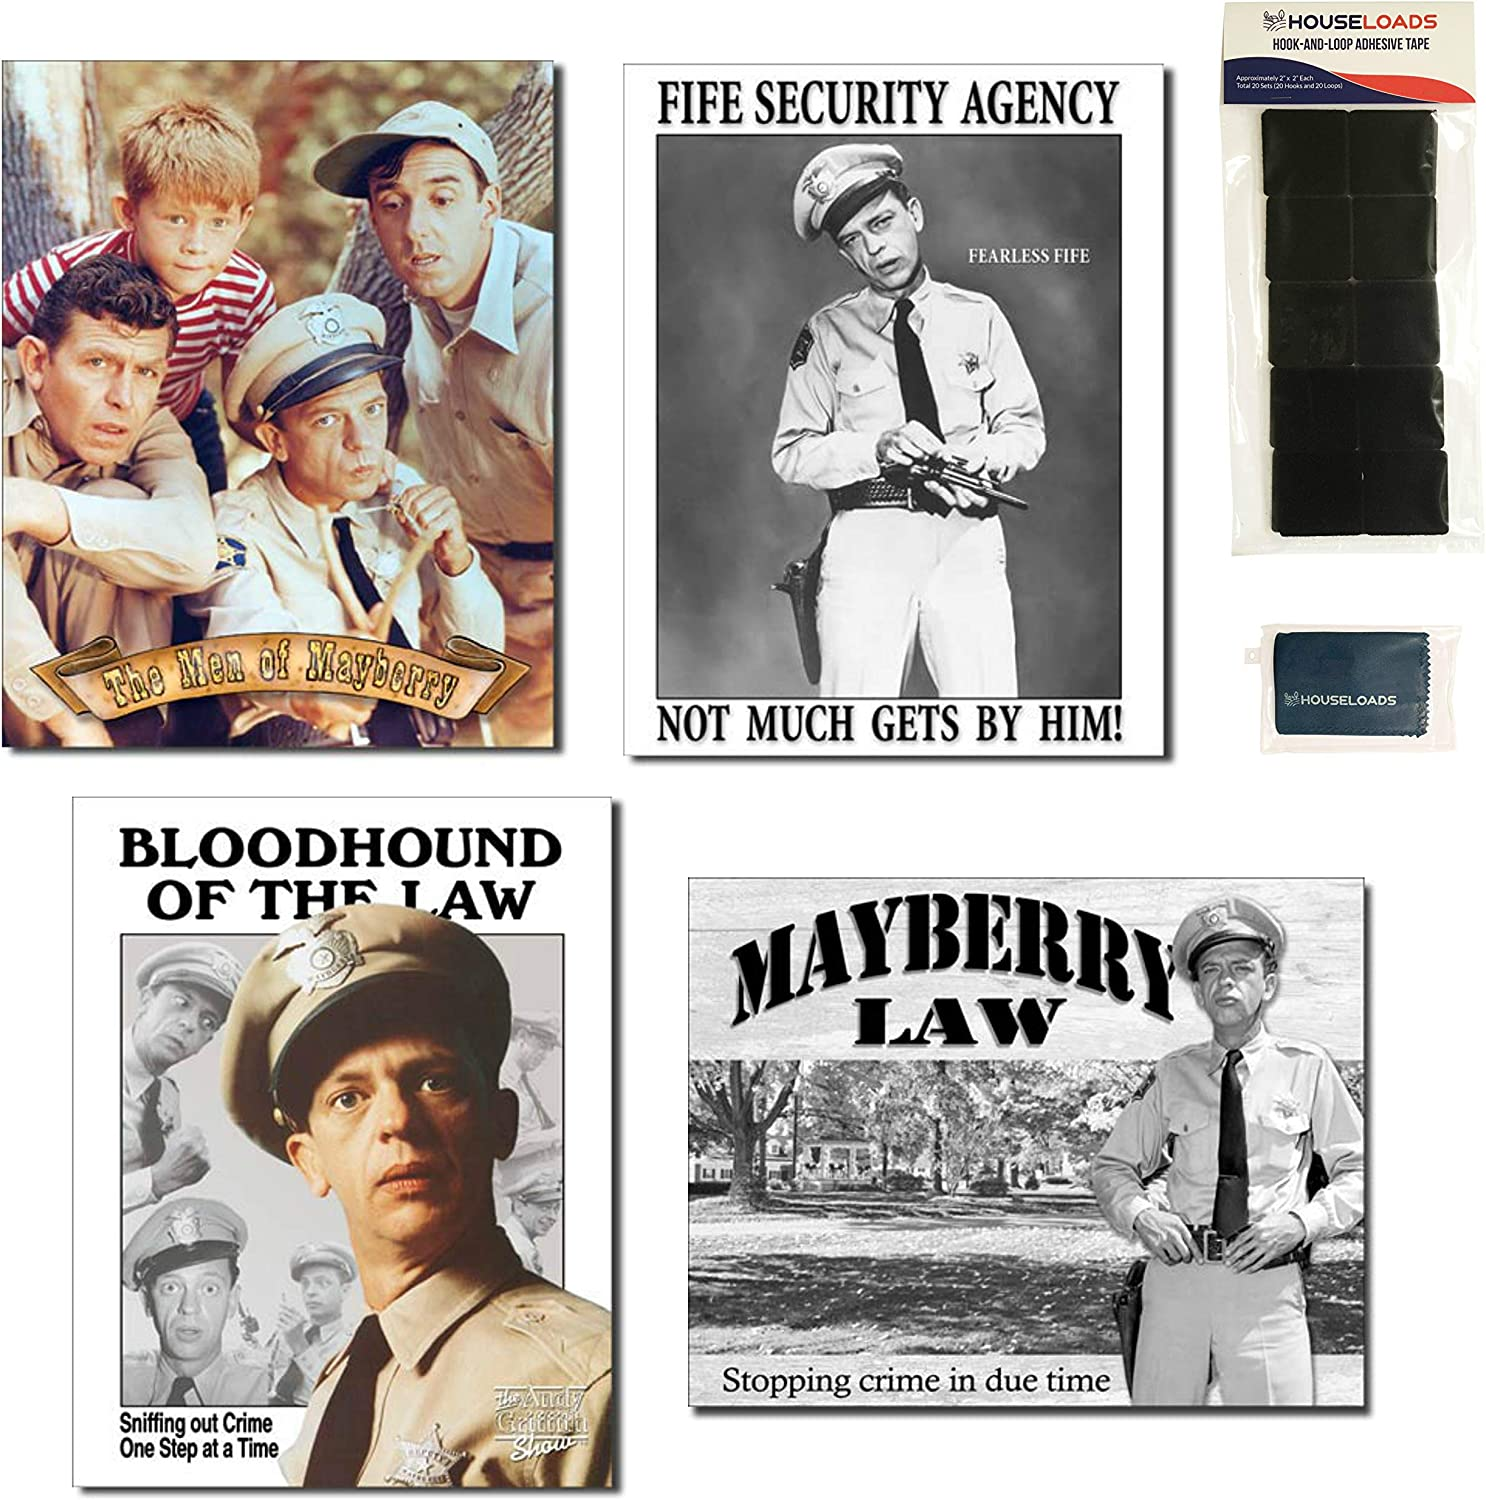 Andy Griffith Barney Fife Tin Sign Bundle - Men of Mayberry, Fife Security Agency, Bloodhound of The Law, Mayberry Law, 20 Sets of Hook-and-Loop Adhesive Tape and 1 Micro Fiber Cleaning Cloth